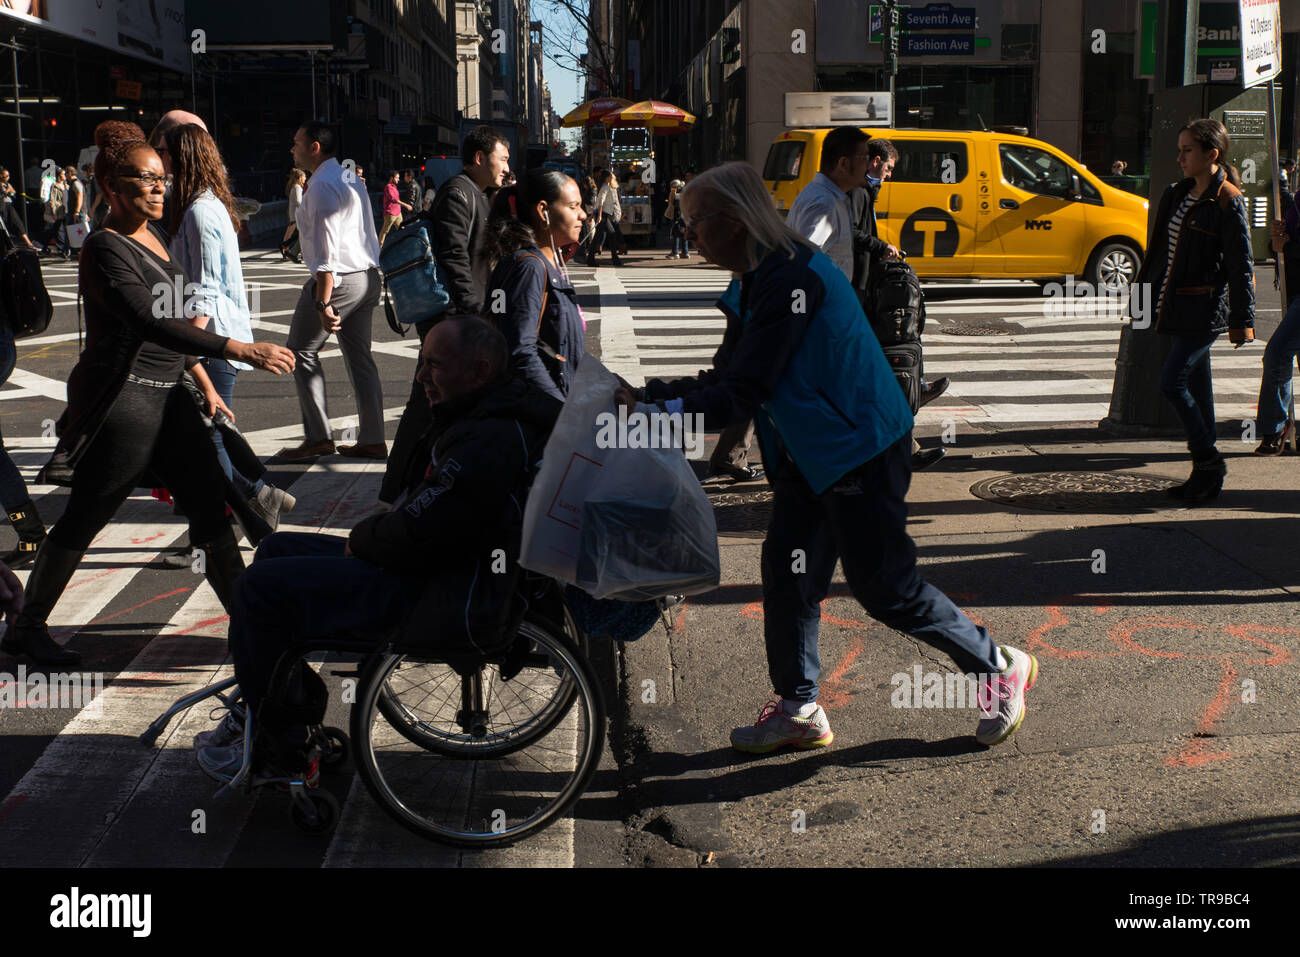 Eine behinderte Person überquert die Straße in einem Rollstuhl, der von einem Begleiter geschoben wird. // A handicapped person crosses the street in Stock Photo